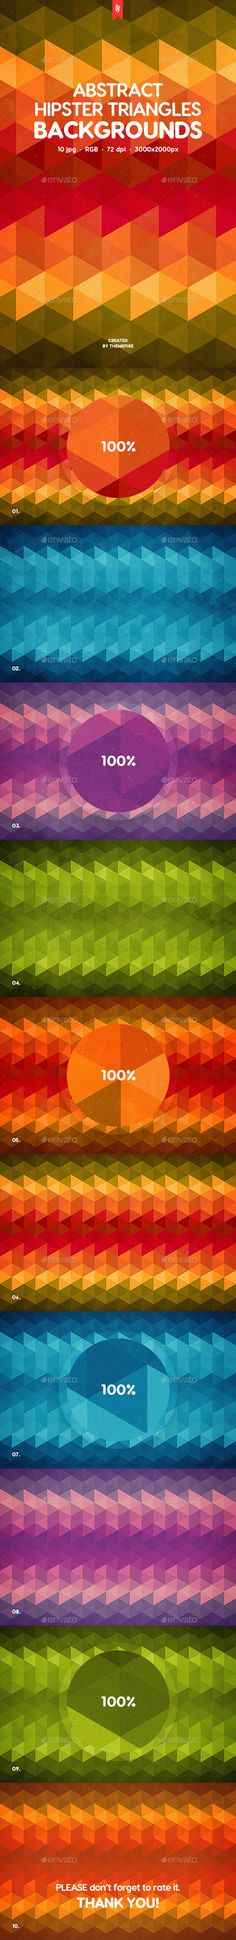 Hipster Triangles Backgrounds